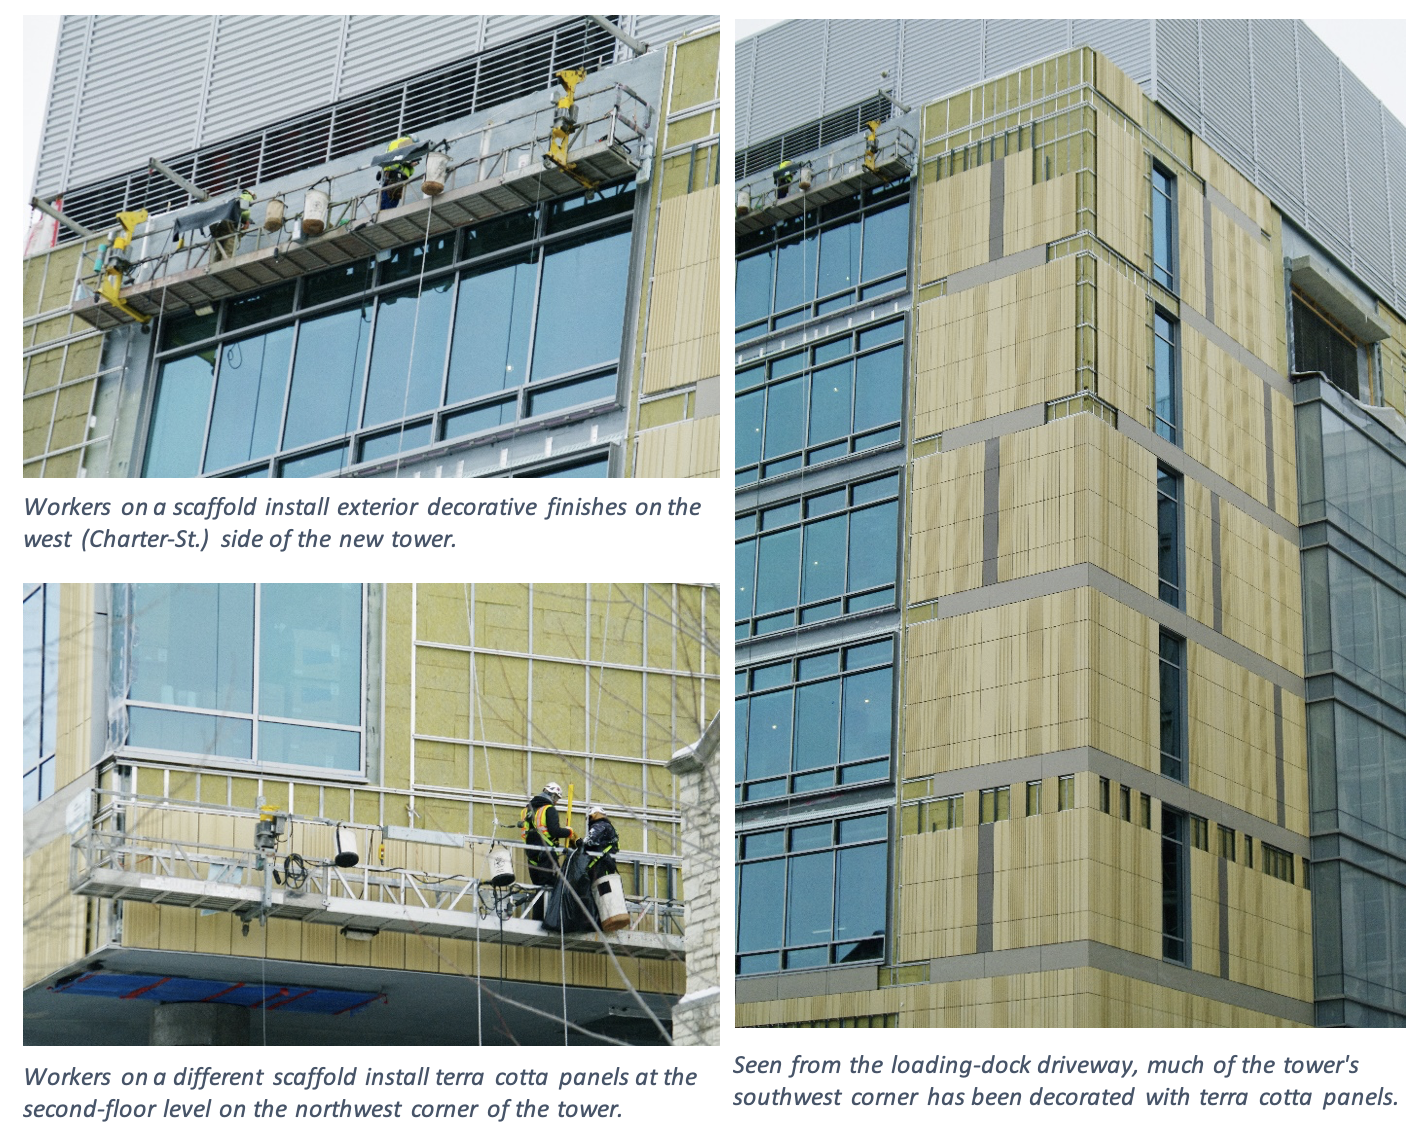 Three images showing workers installing the decorative terra cotta panels on the exterior of the building.